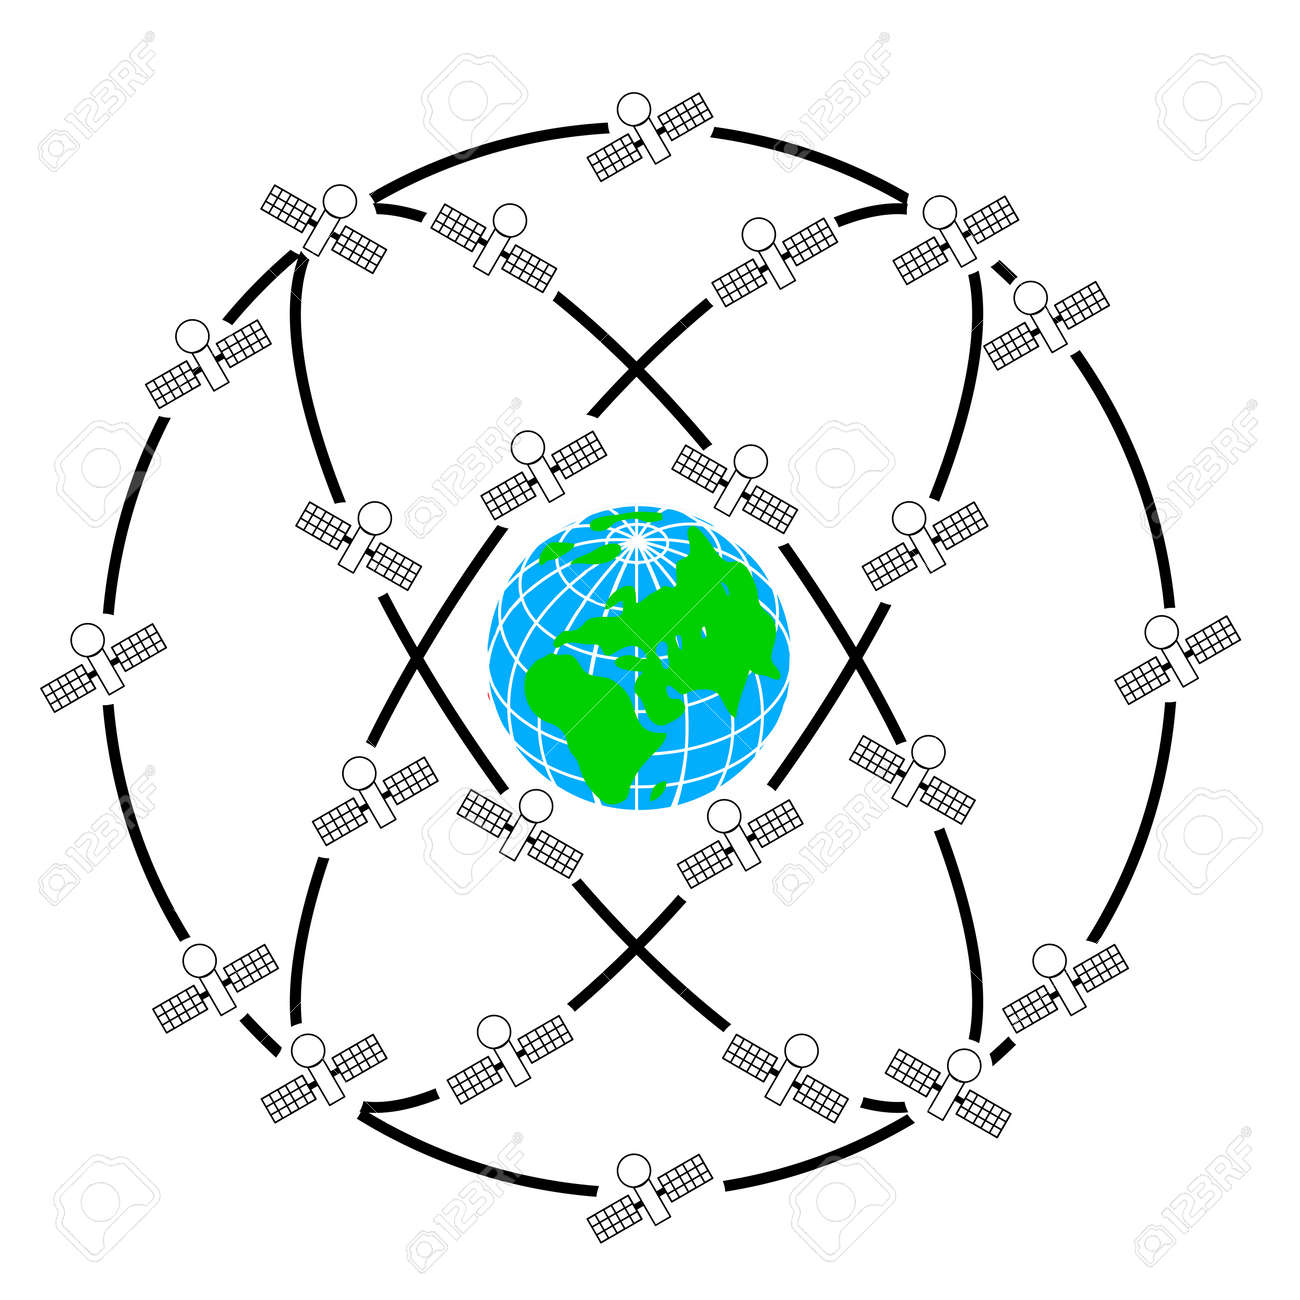 Space satellites in eccentric orbits around the Earth. Stock Vector - 11171890